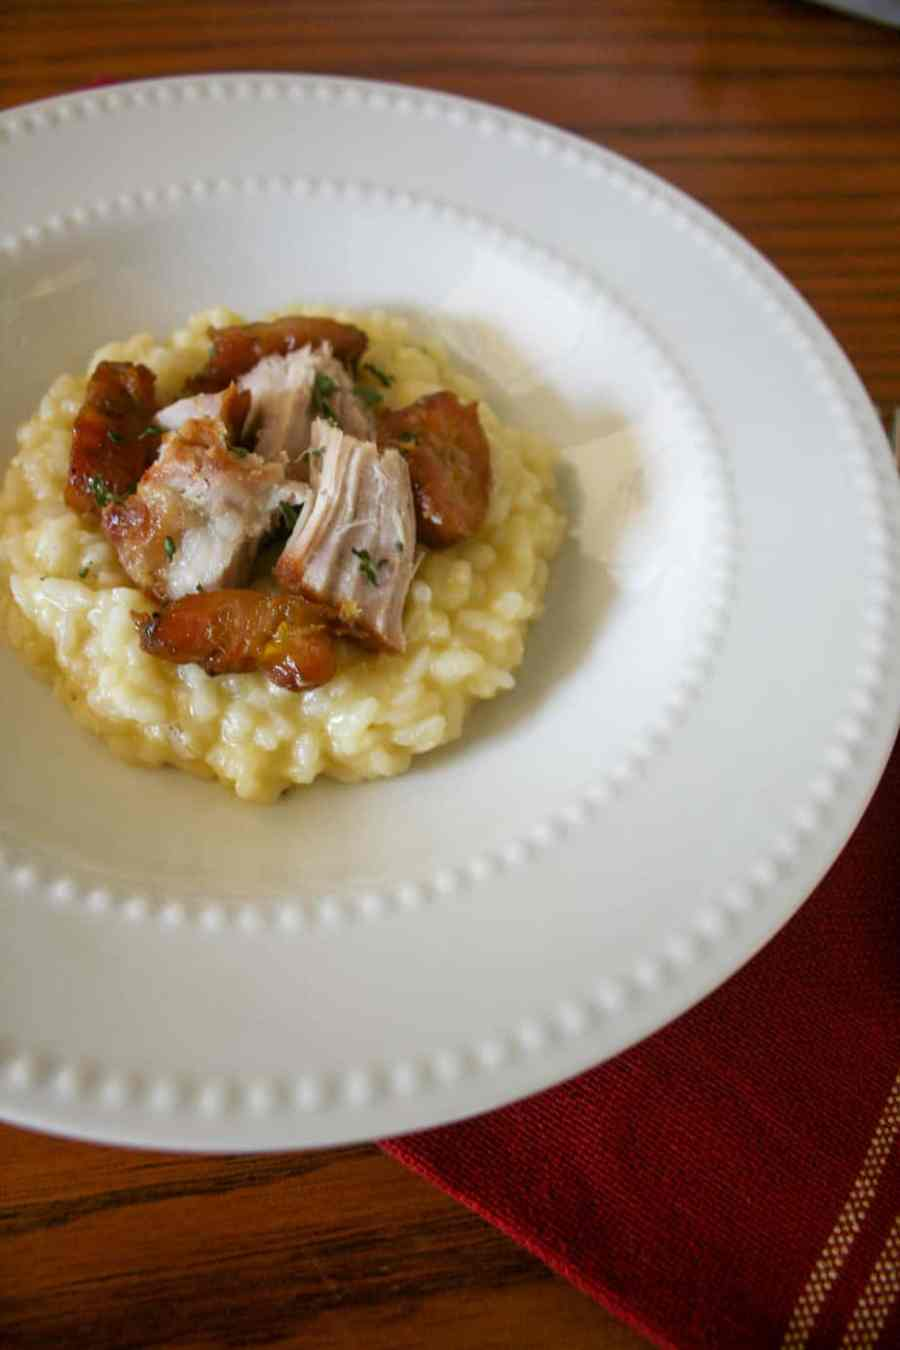 Parmesan Garlic Risotto topped with pork chunks and sweet plantains is the perfect dinner with a Hispanic twist!